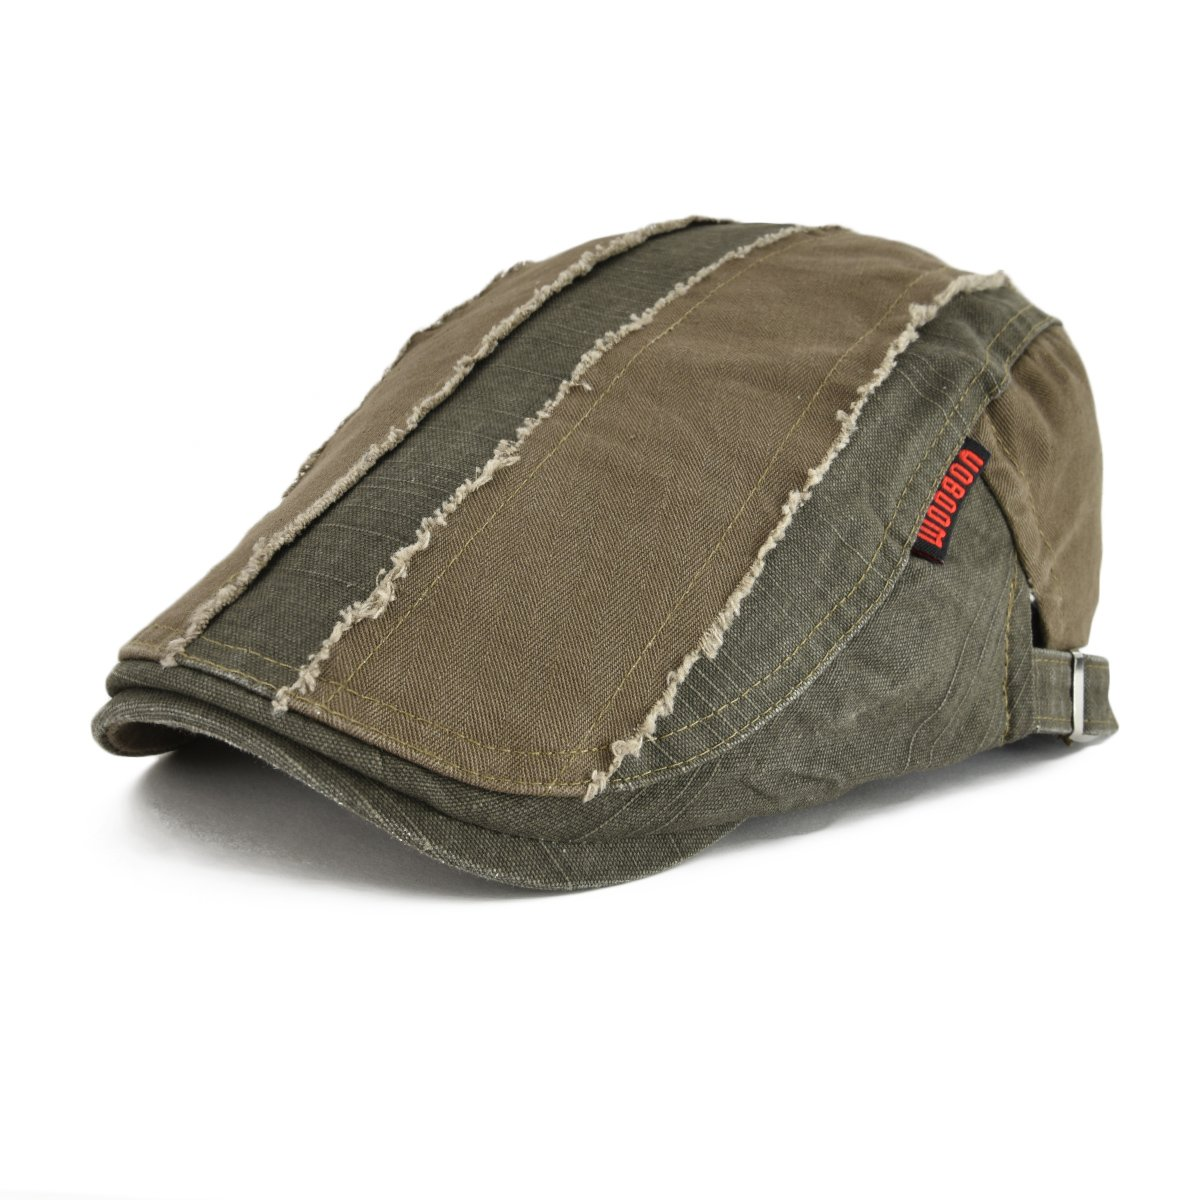 d2d52e8387a VOBOOM 100% Cotton Distressed Ivy Caps Newsboy Caps Cabbie Hat Gatsby Hat  (Army Green) at Amazon Men s Clothing store